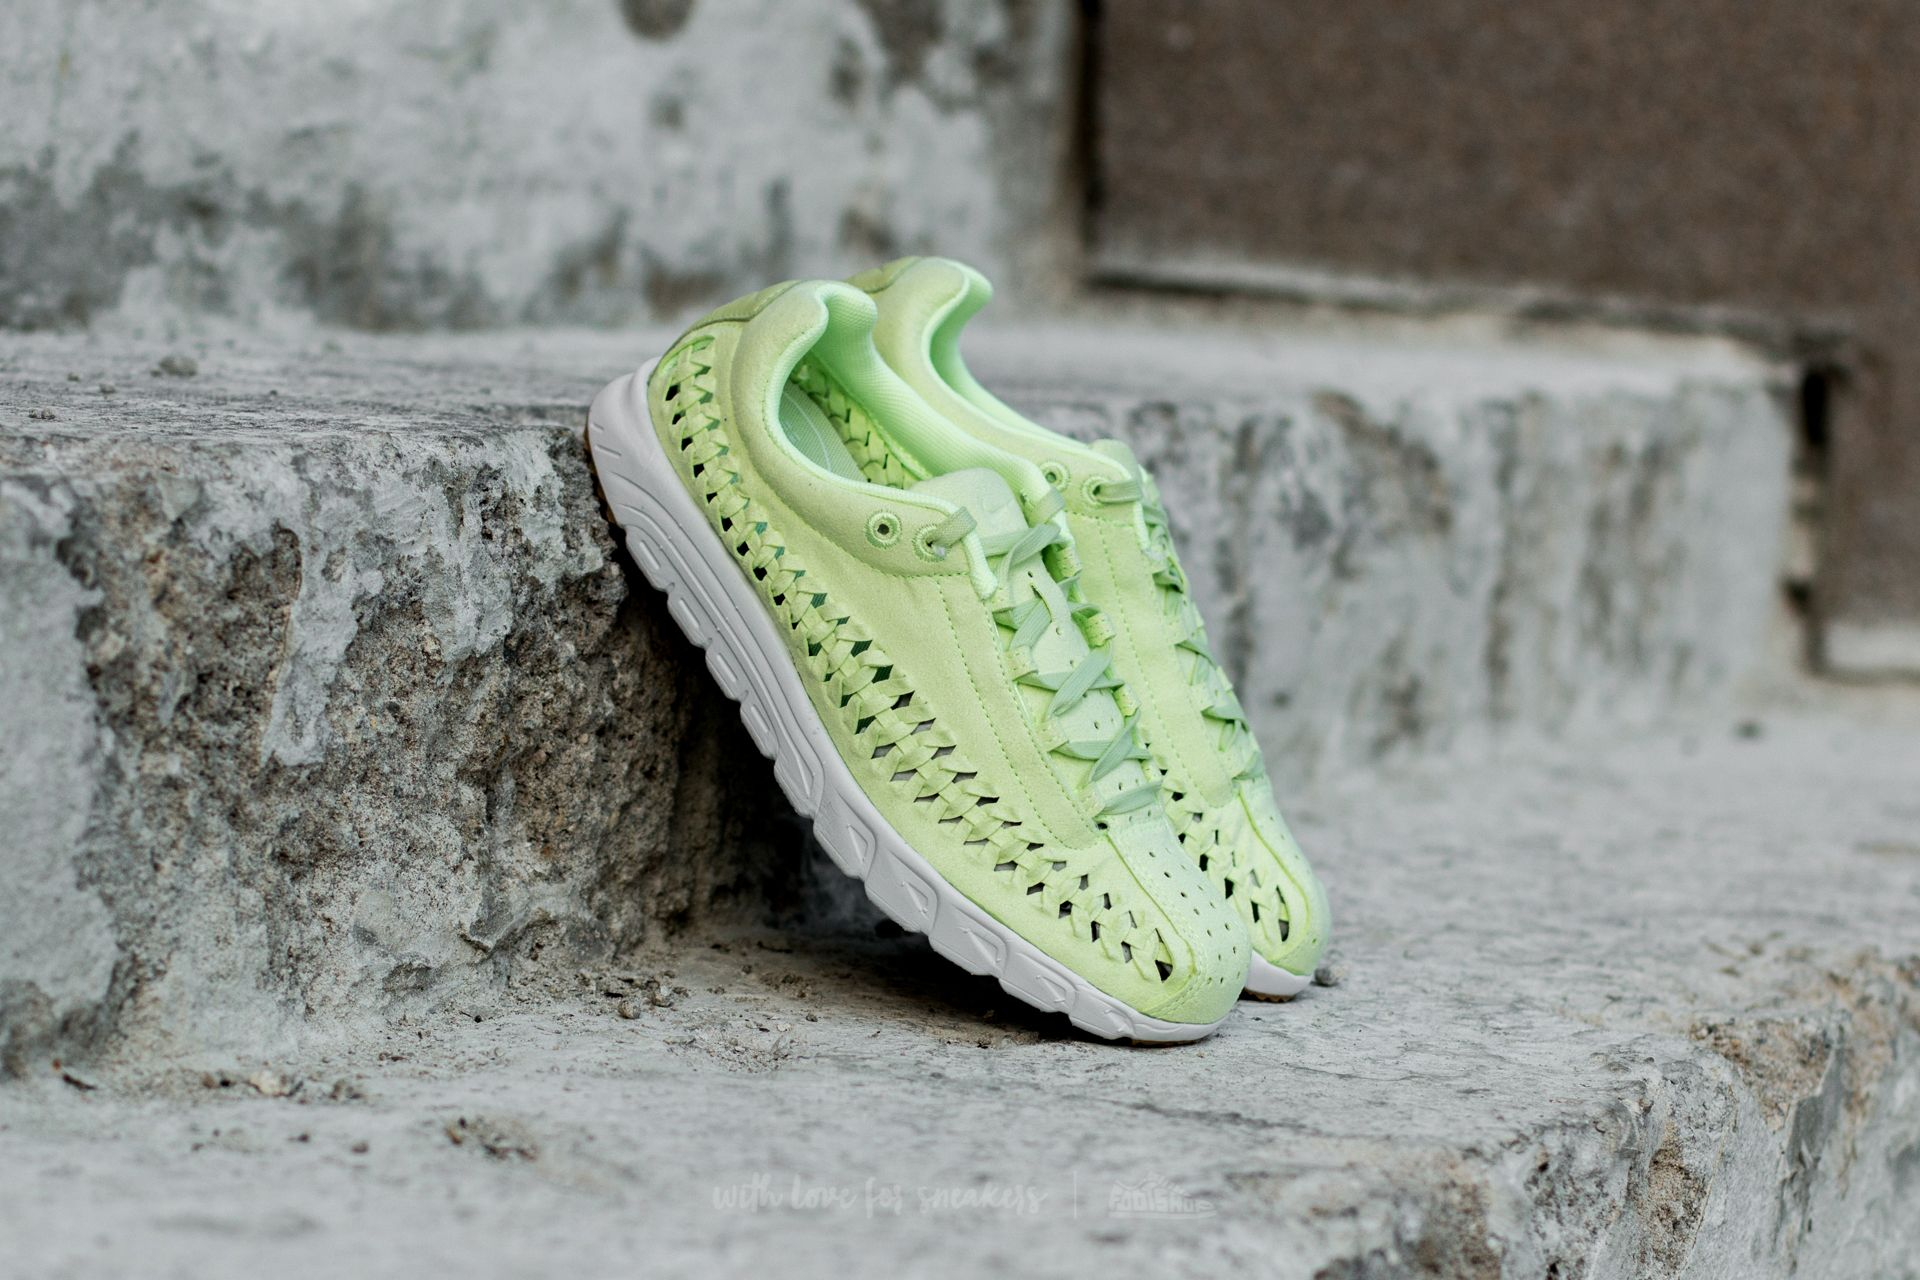 Nike Wmns Mayfly Woven QS Ligth Liquid Lime/ Ligth Liquid Lime